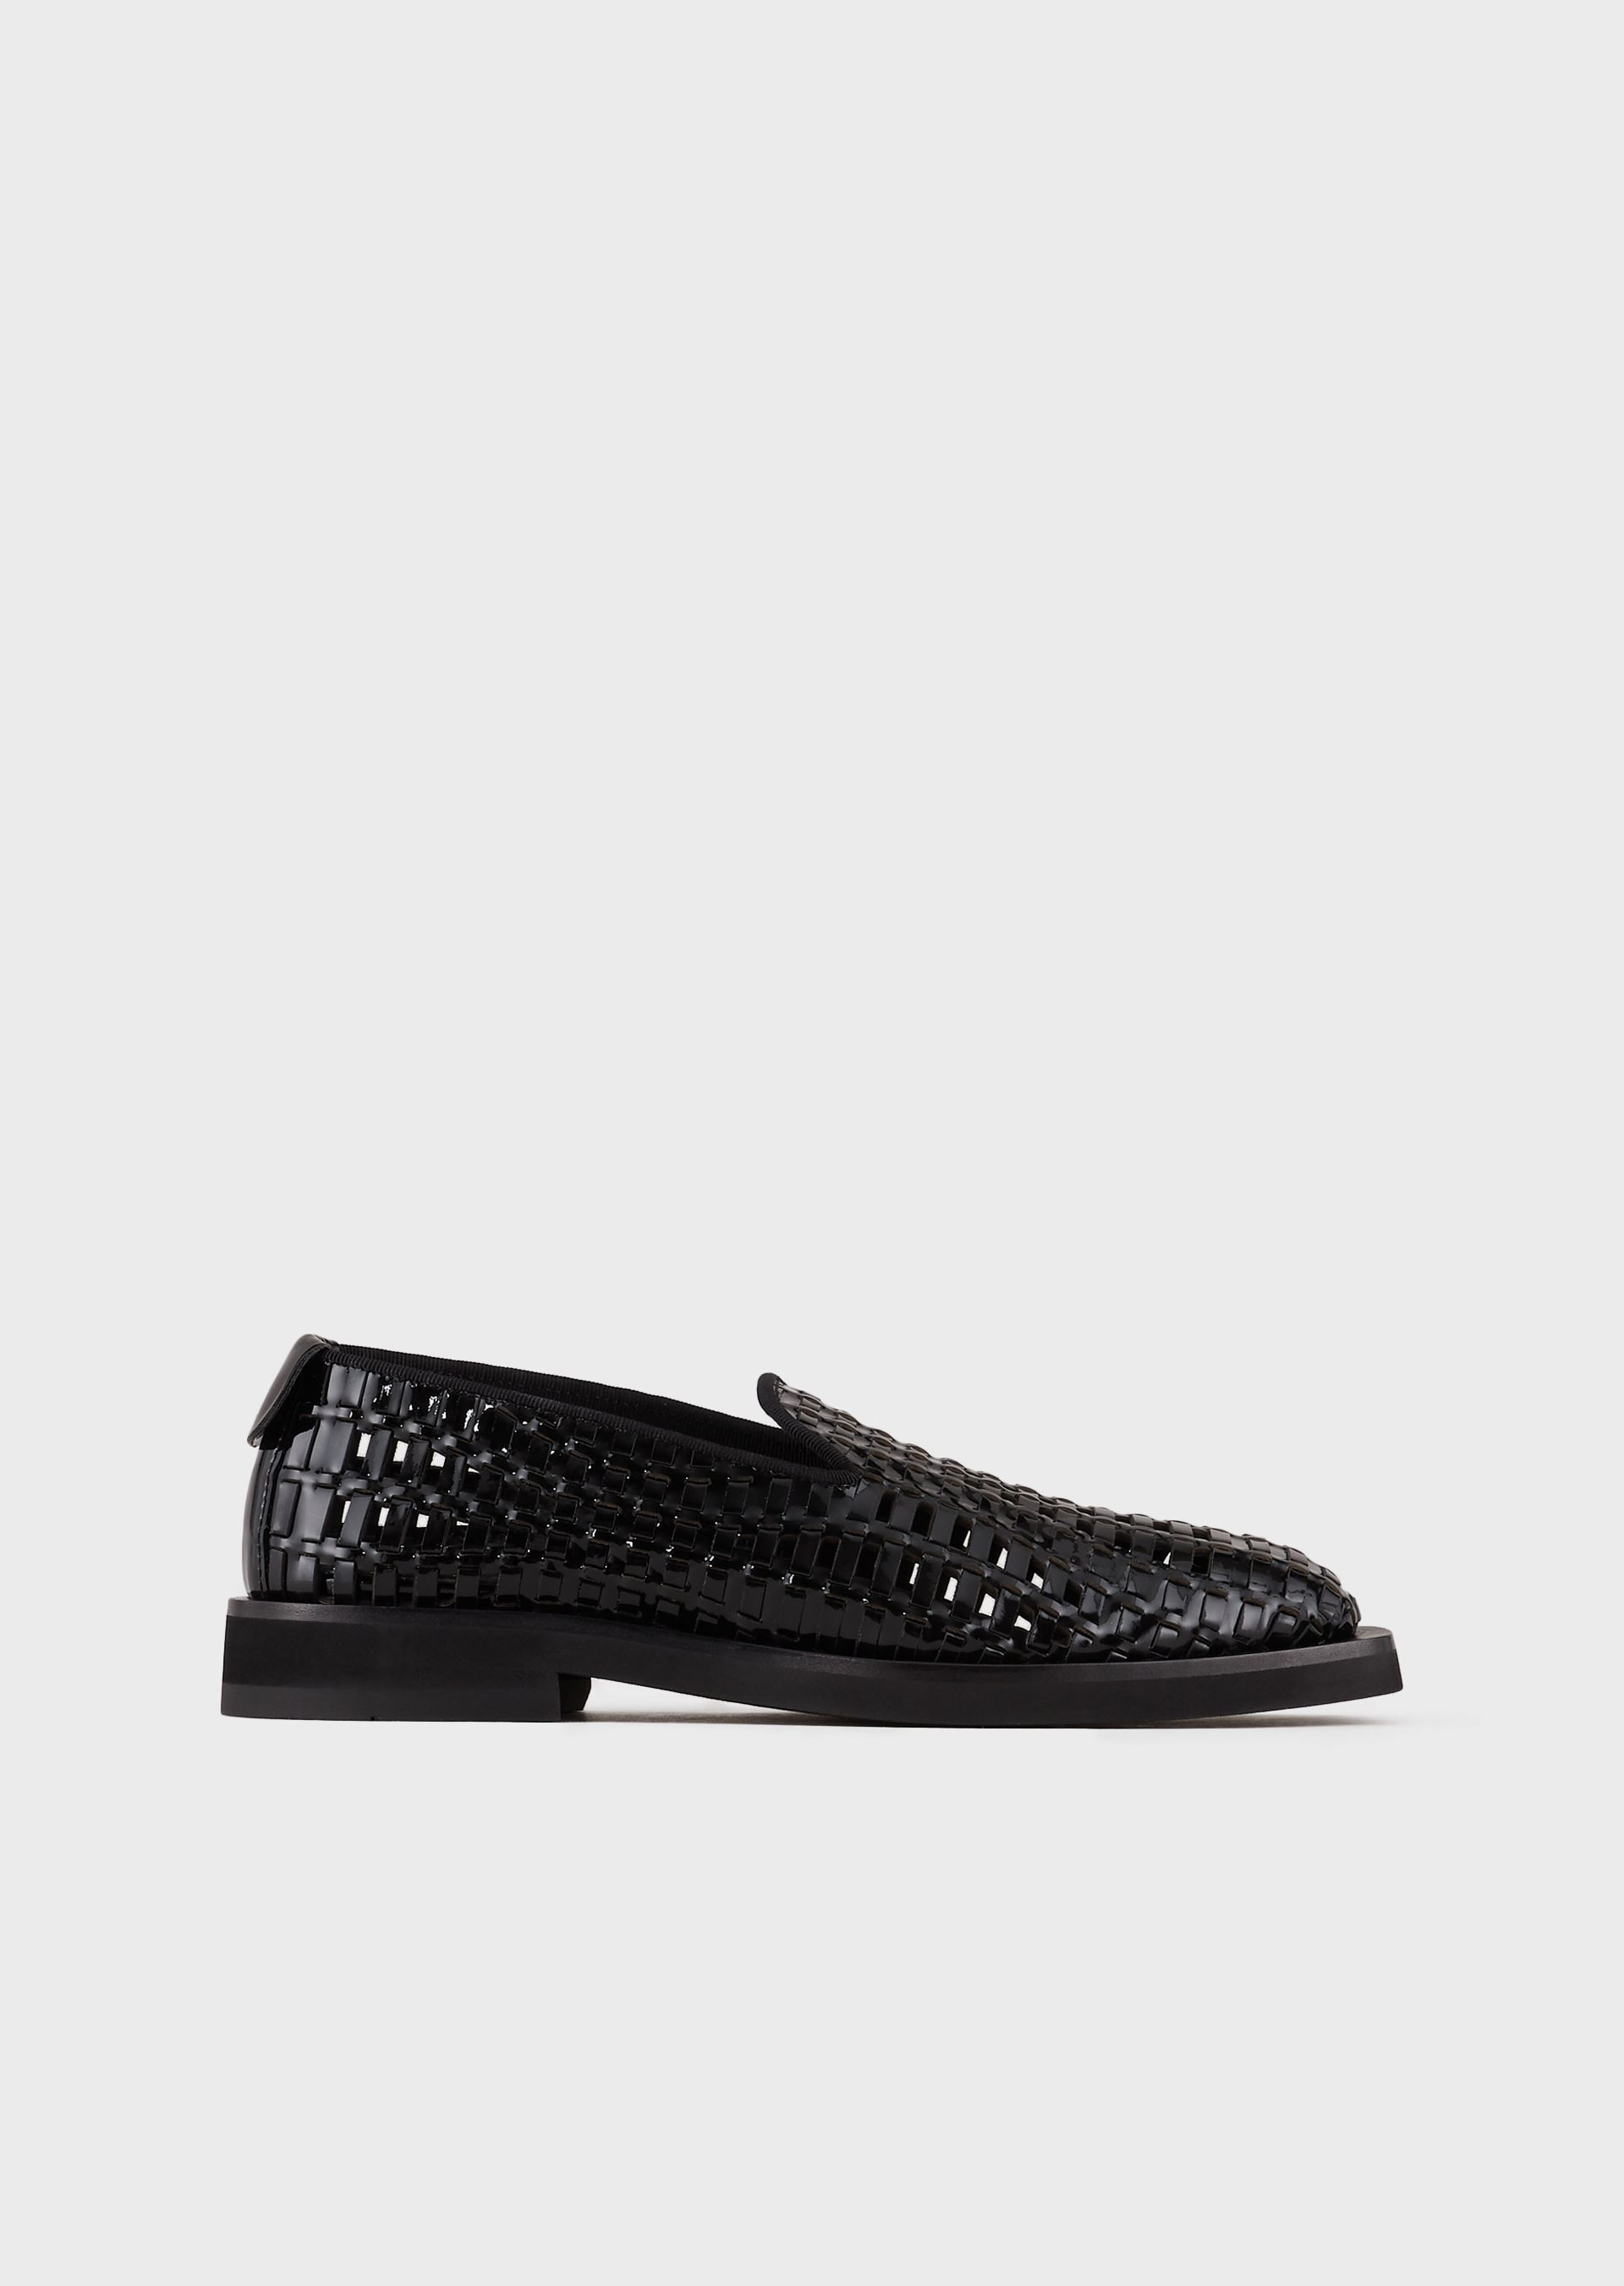 EMPORIO ARMANI Perforated, woven, patent-leather loafers